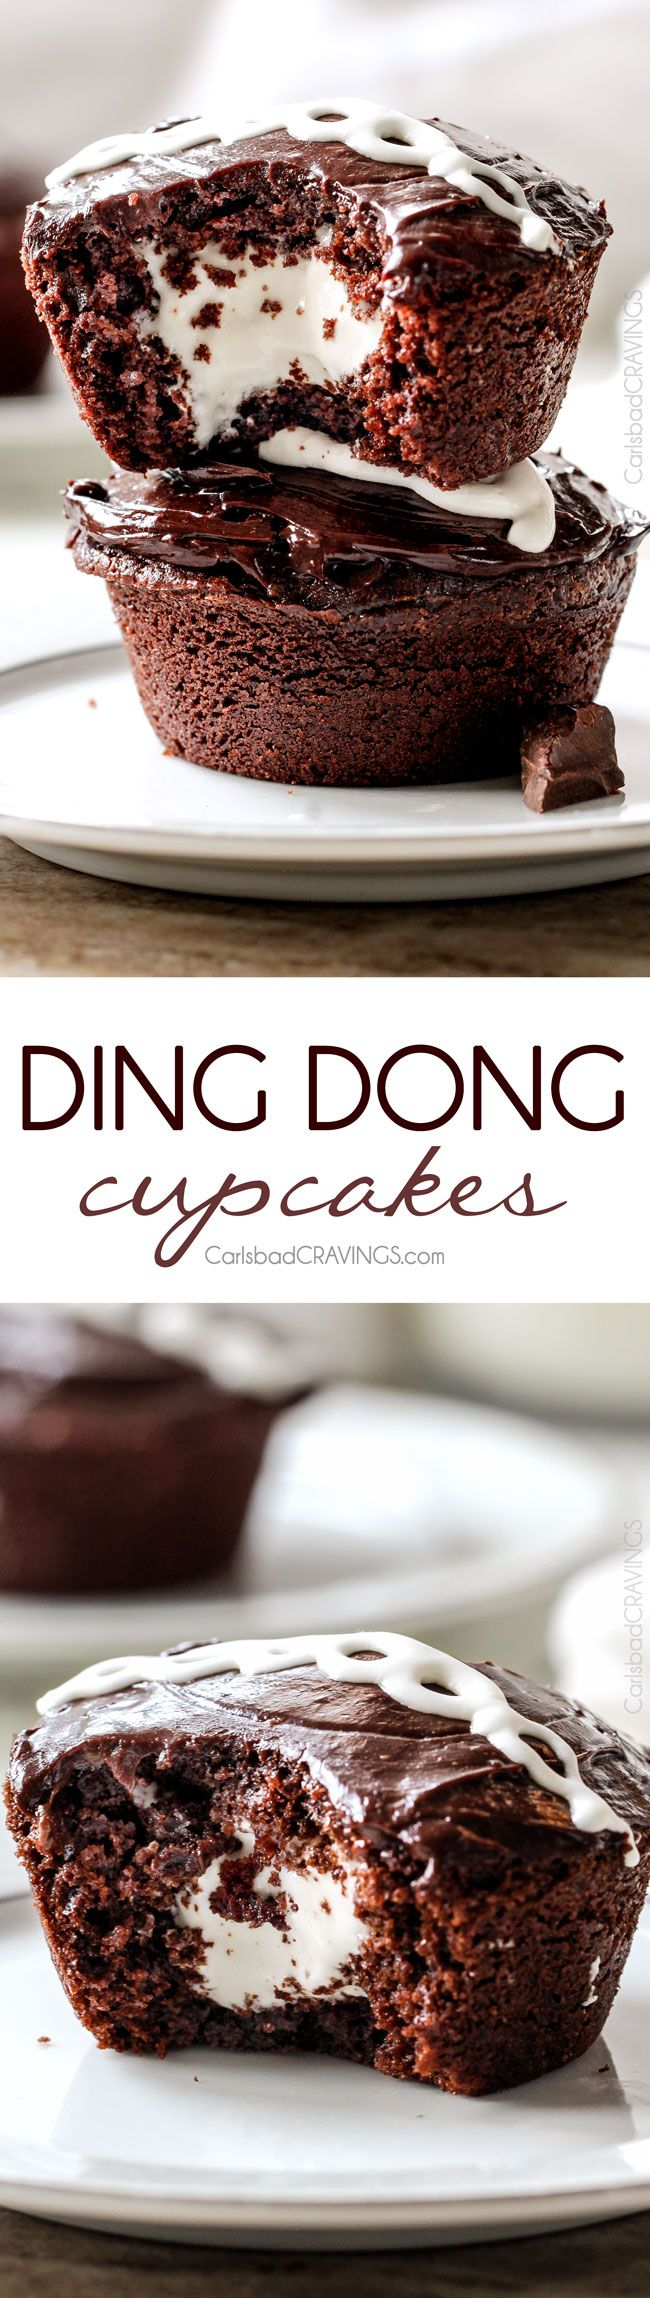 Ding Dong Cupcakes are a rich, moist chocolate cupcake stuffed with creamy marshmallow filling and smothered in a silky chocolate ganache! You will never want to buy Ding Dongs from the store again!